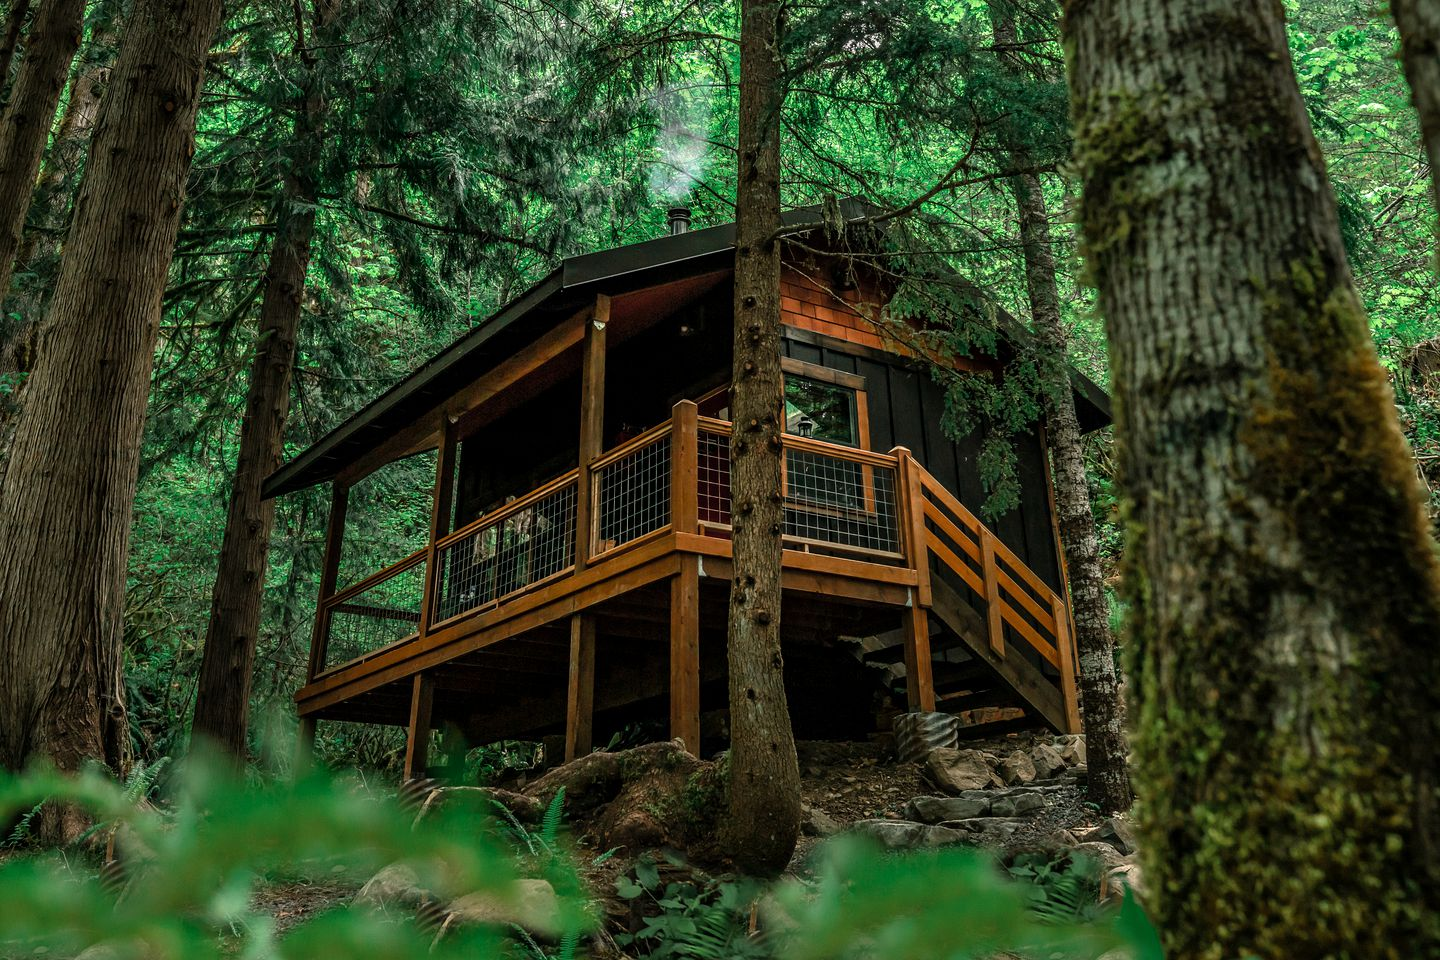 Cabin rental in the trees for a weekend getaway in Oregon.